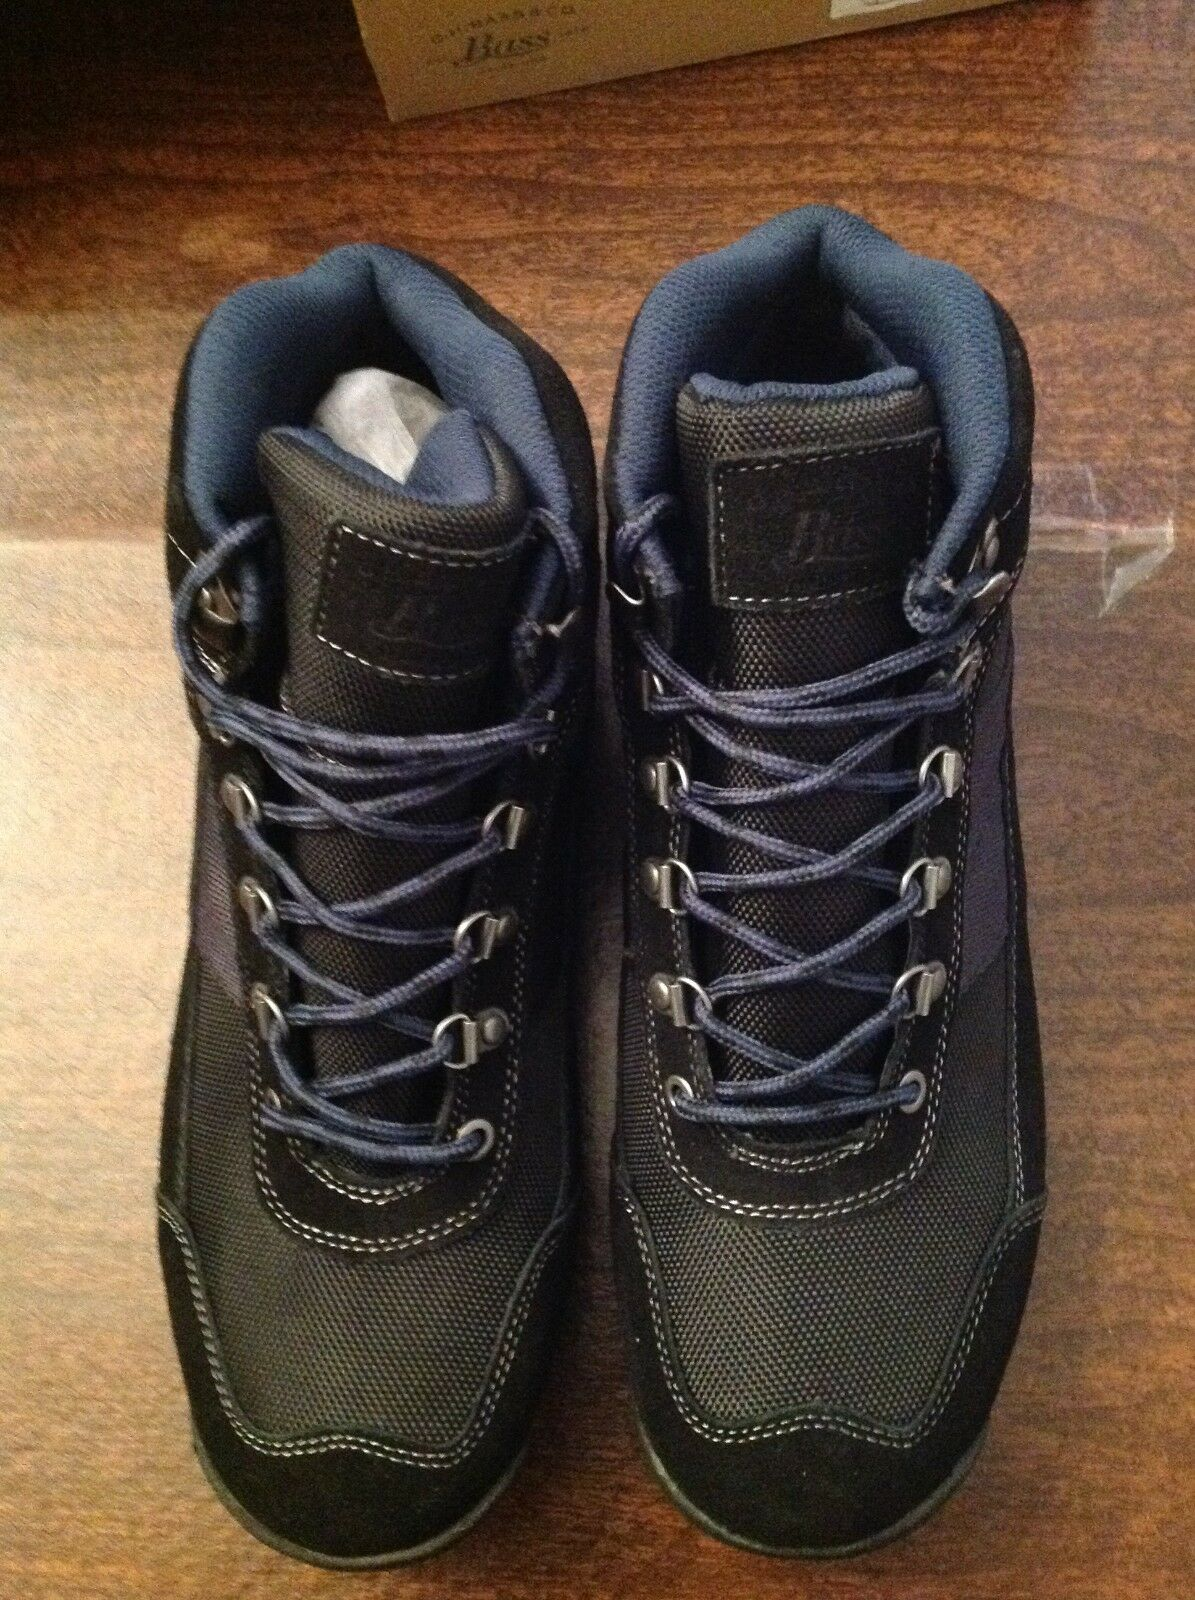 G. H. Bass Men's Black Aspen Hikers Boots  Size: 11.5M   New in Box